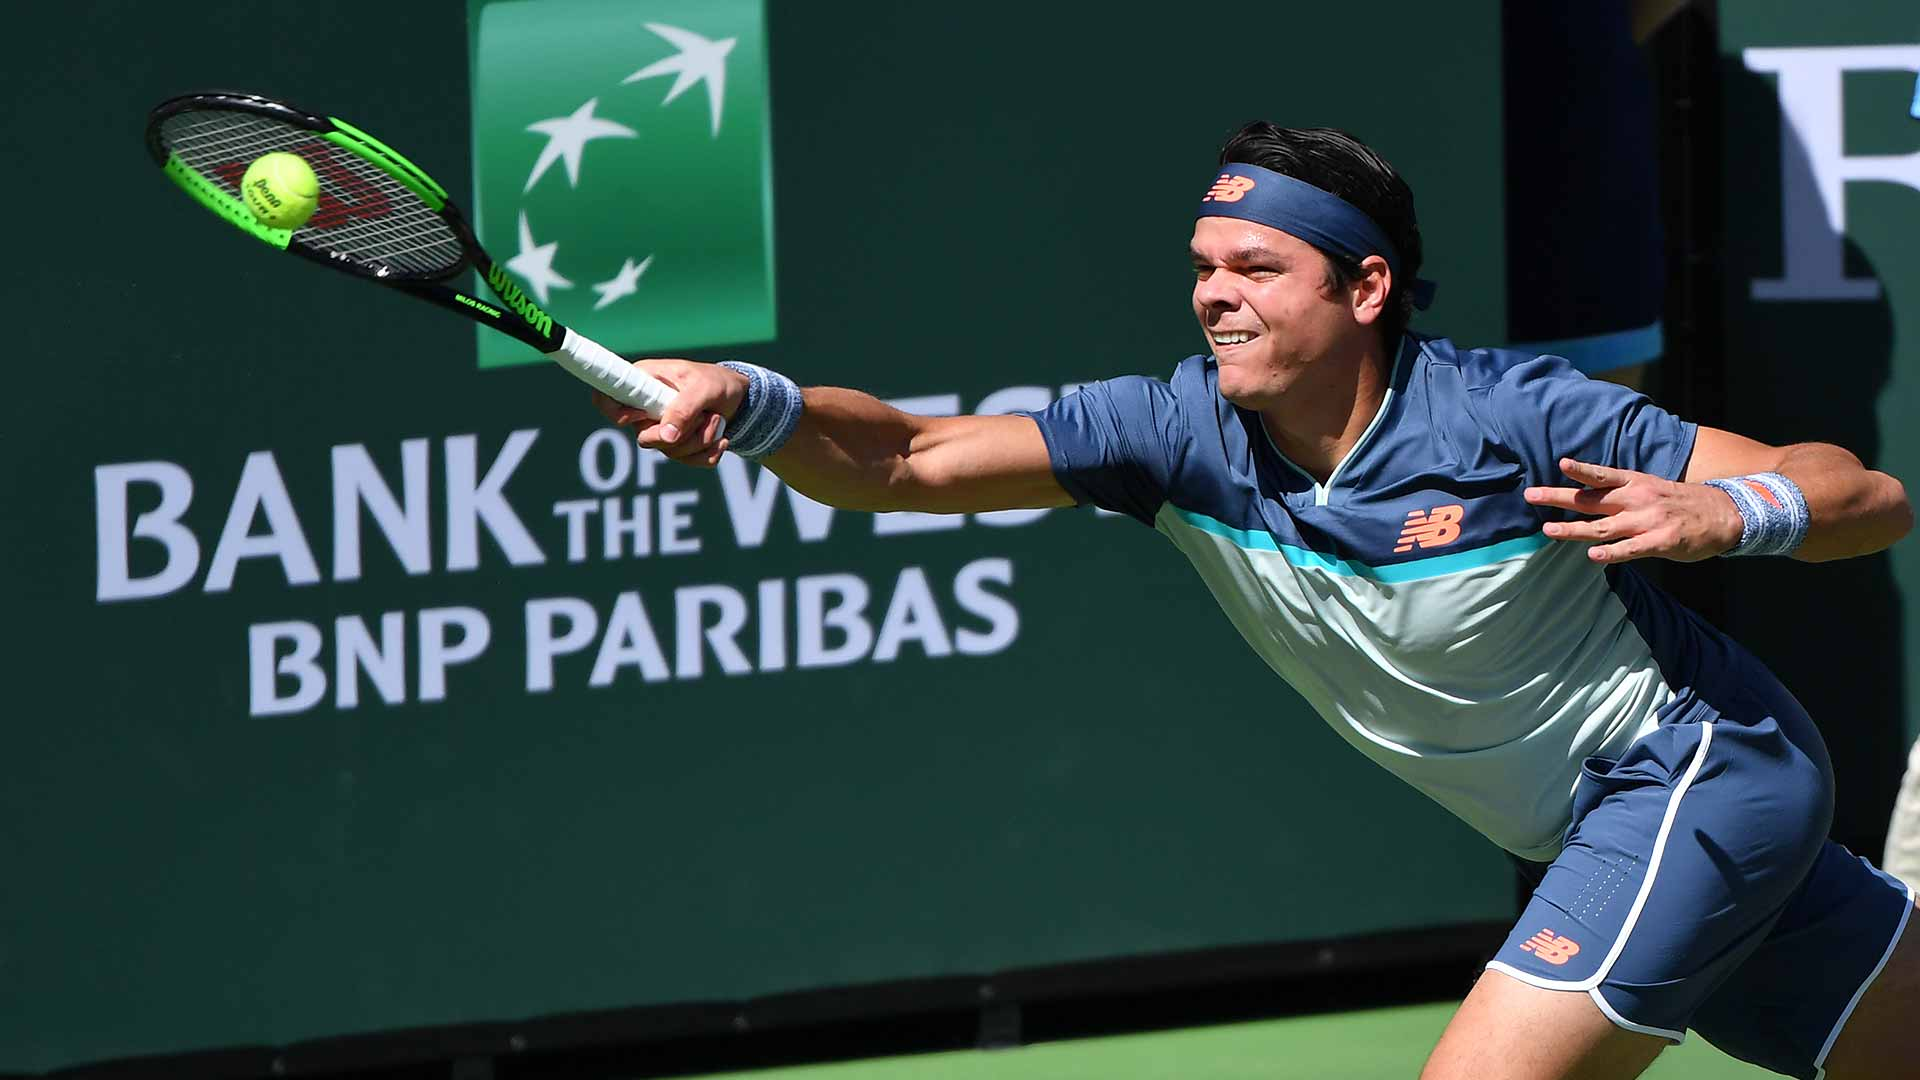 <a href='https://www.atptour.com/en/players/milos-raonic/r975/overview'>Milos Raonic</a> reaches the quarter-finals at the <a href='https://www.atptour.com/en/tournaments/indian-wells/404/overview'>BNP Paribas Open</a> in Indian Wells